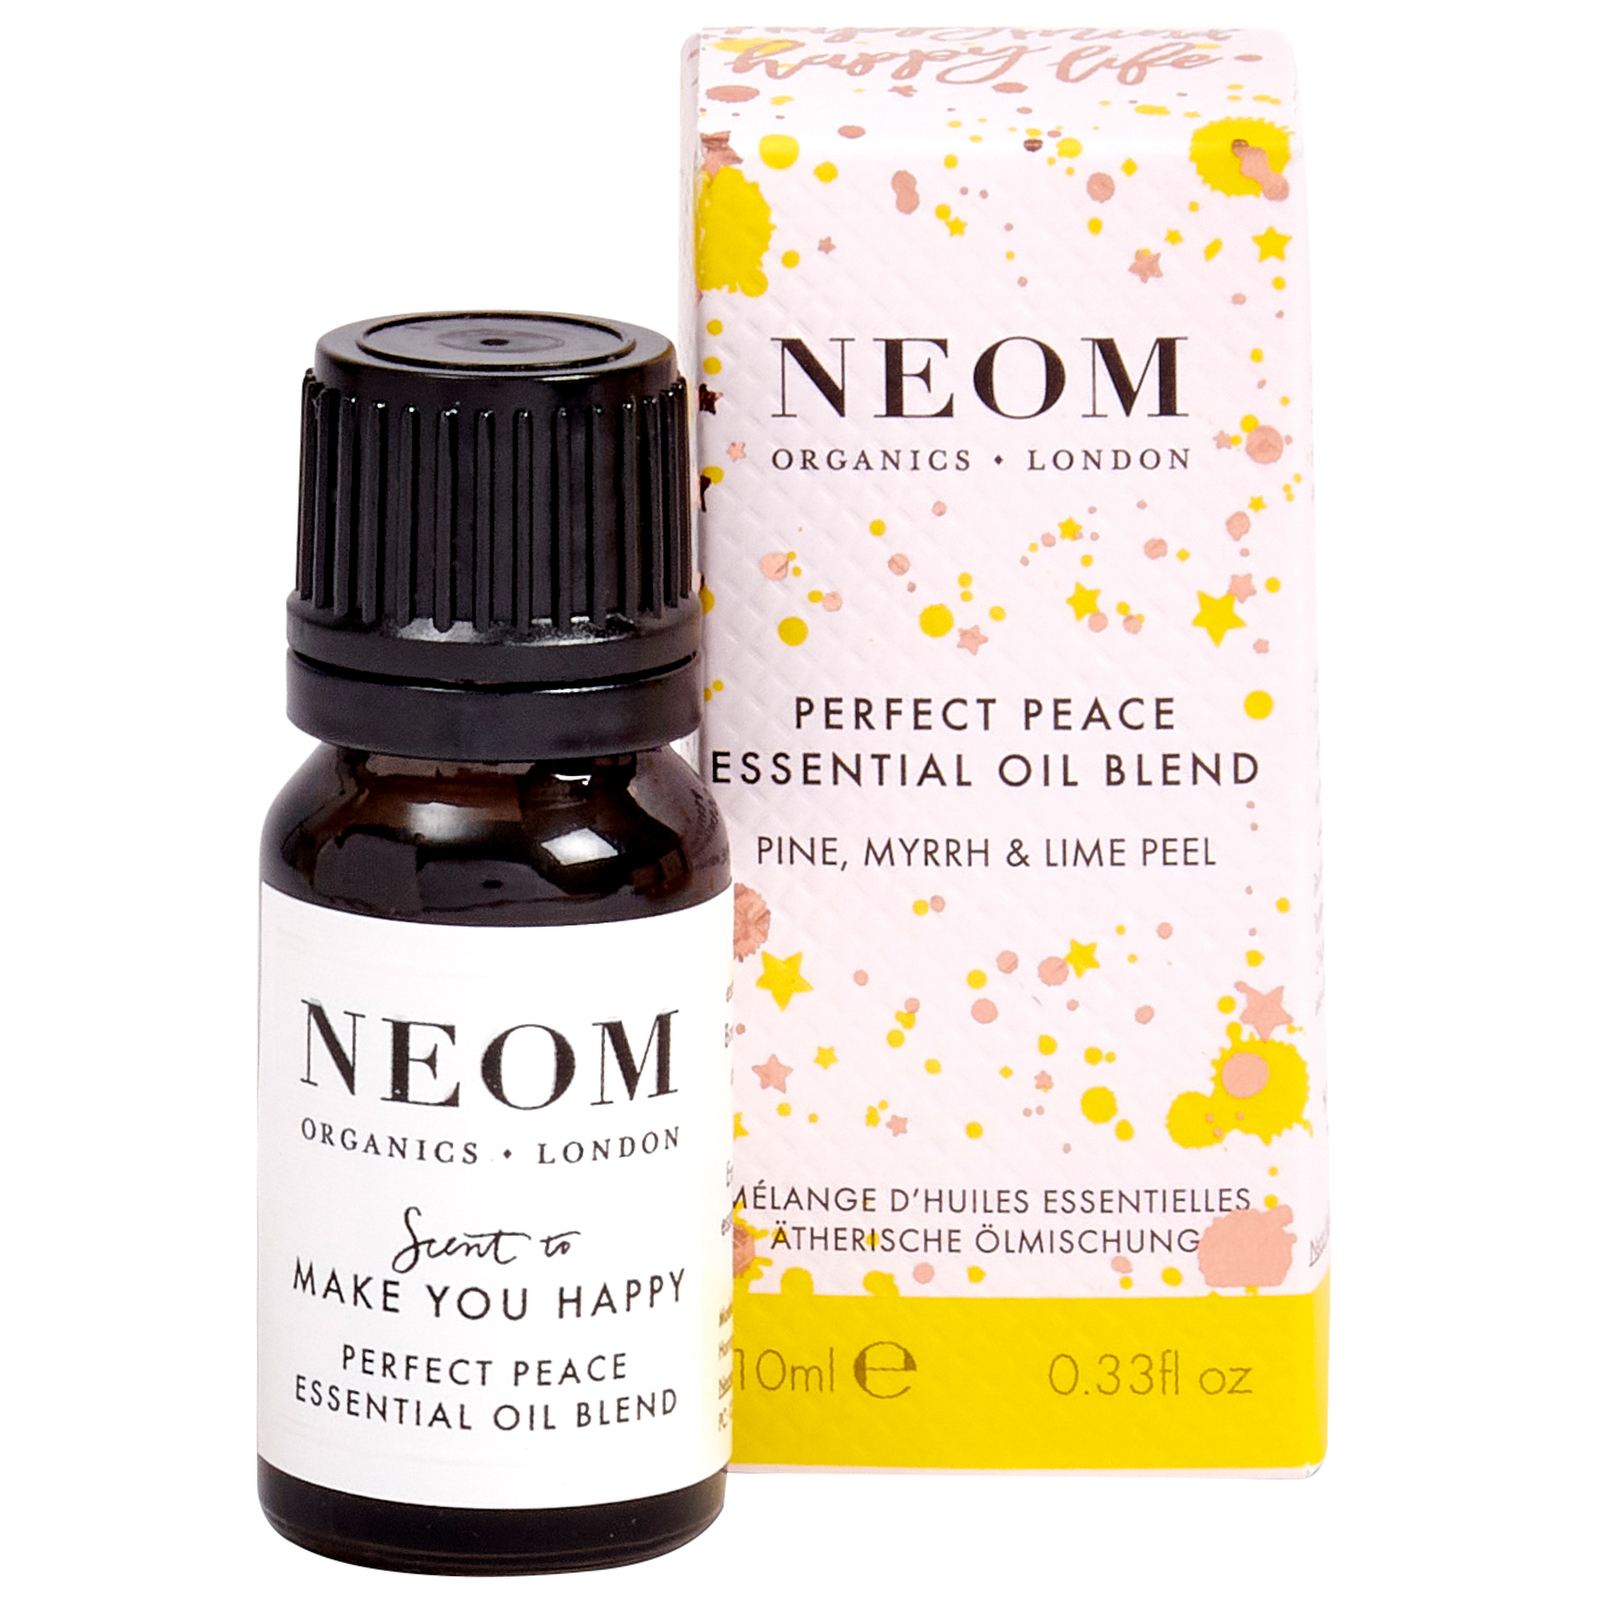 Neom Organics London Christmas 2020 Perfect Peace Essential Oil Blend 10ml